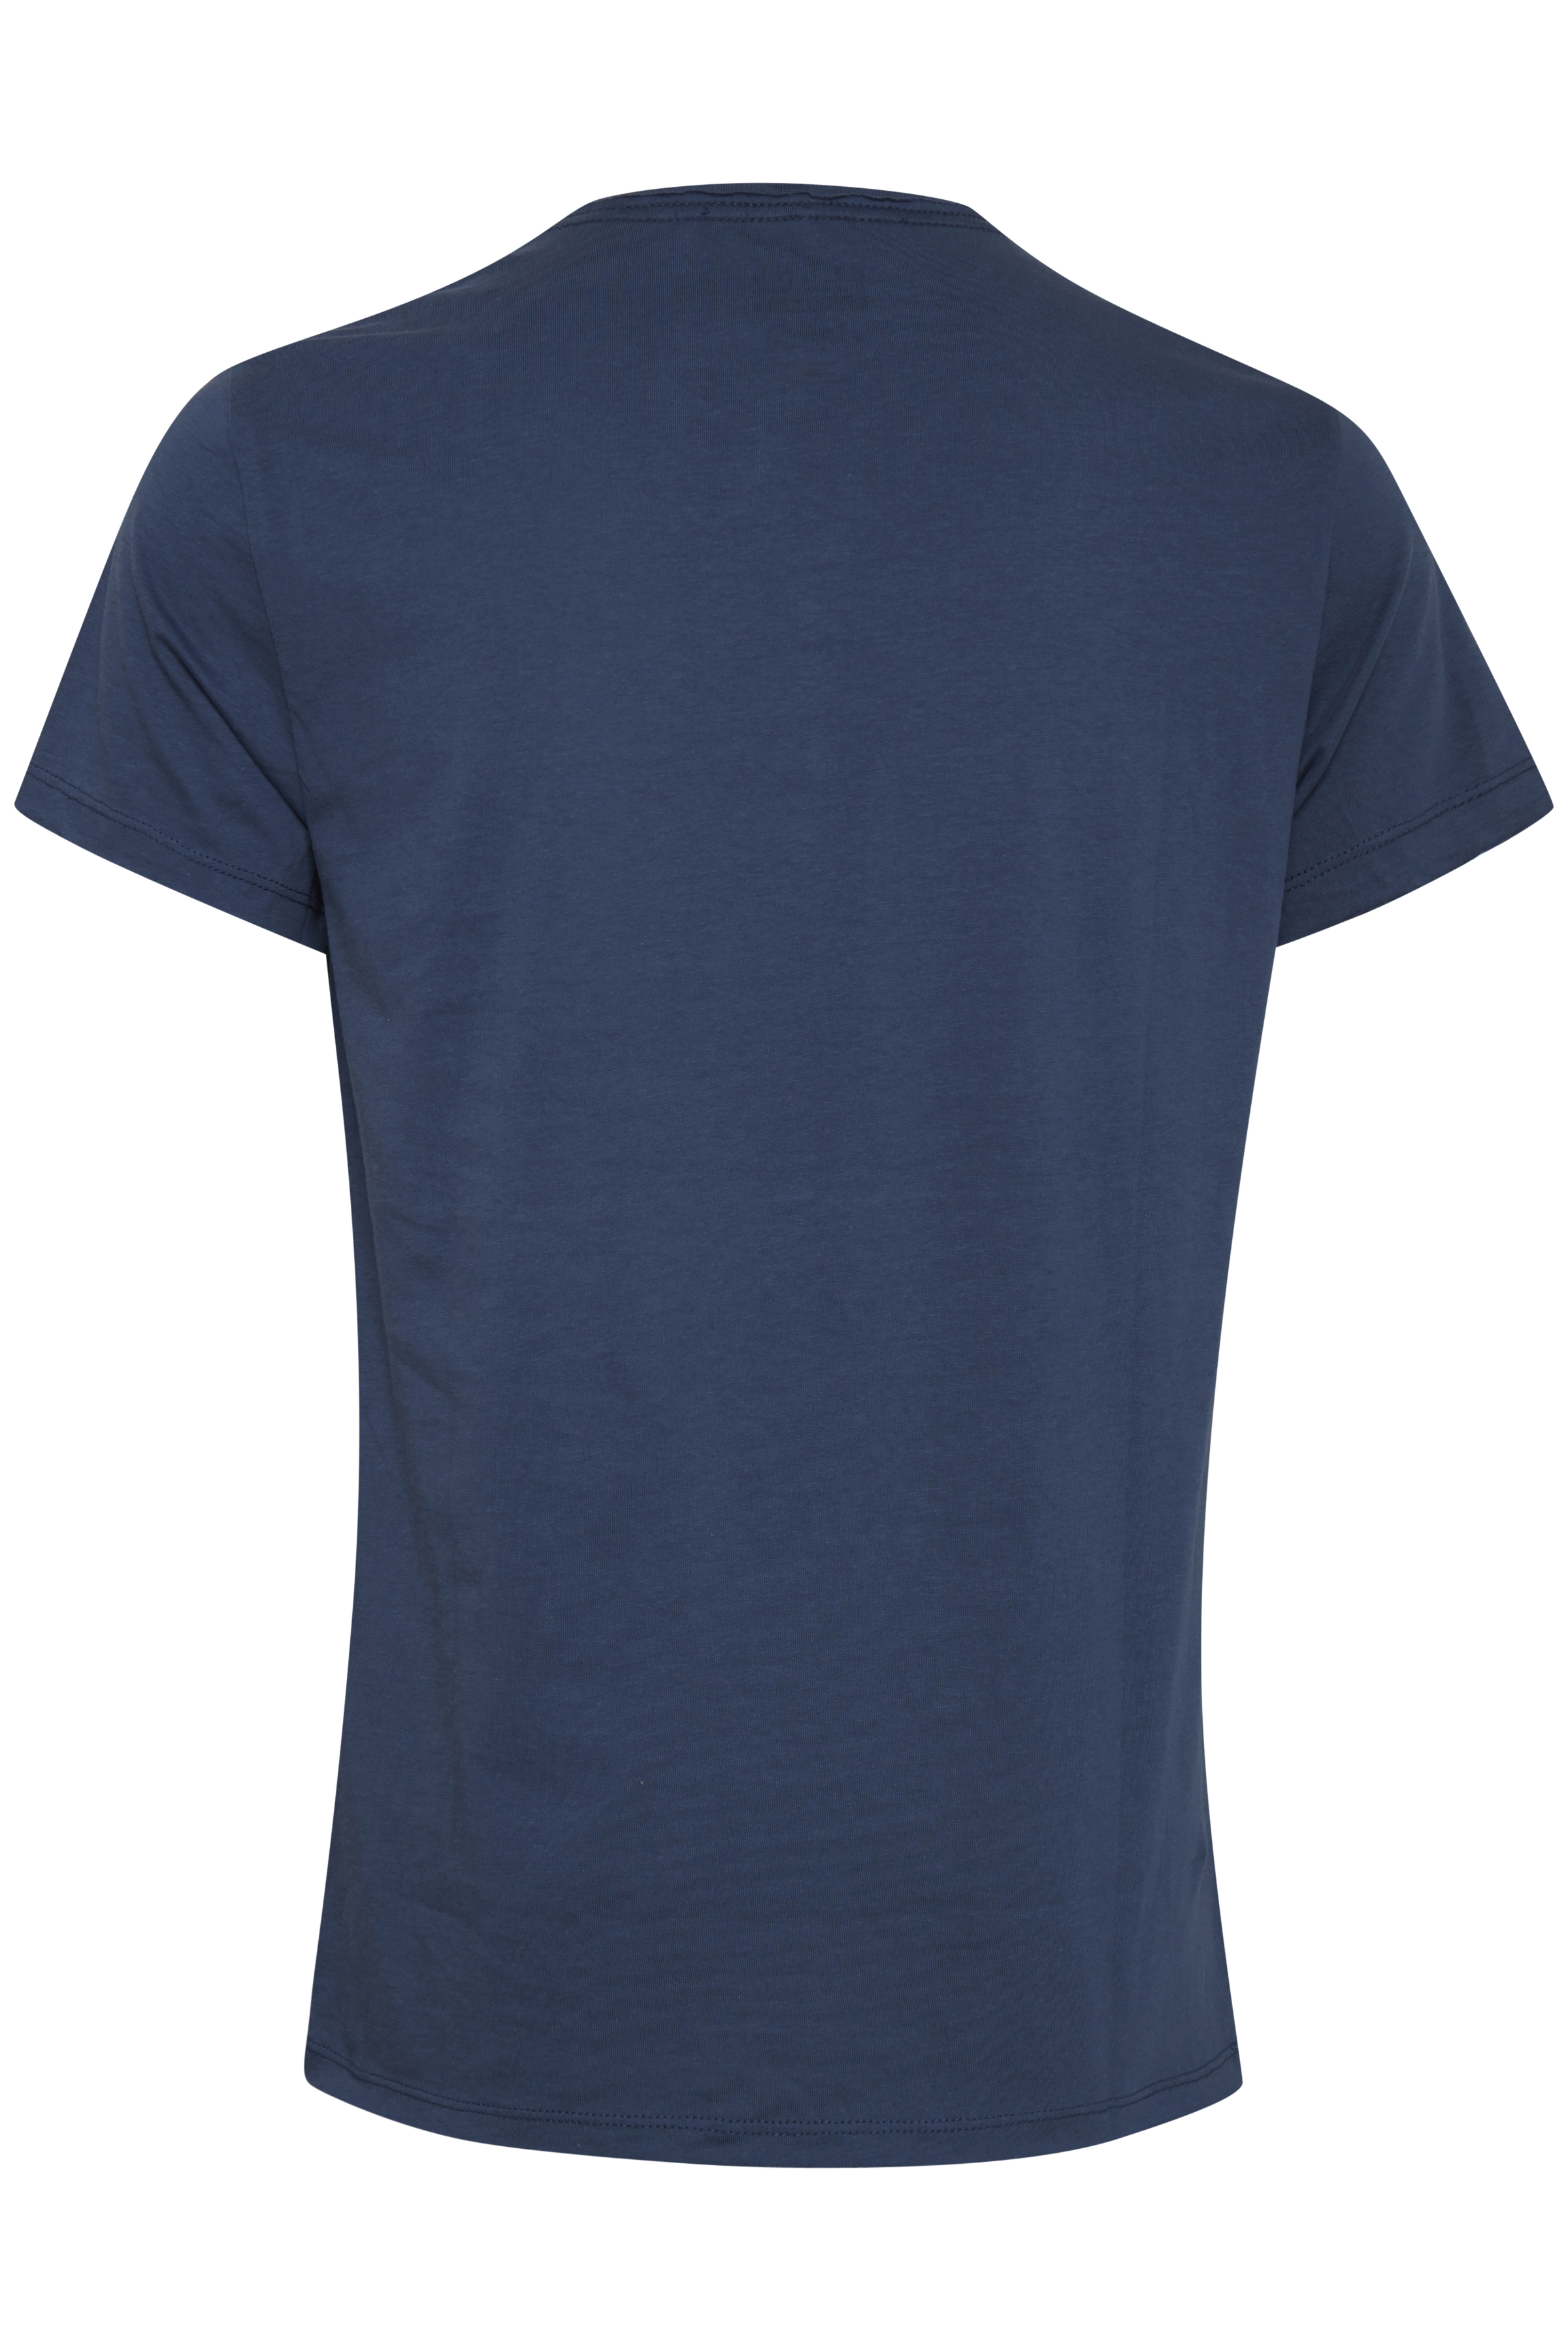 Denim Blue T-shirt – Køb Denim Blue T-shirt fra str. S-XXL her